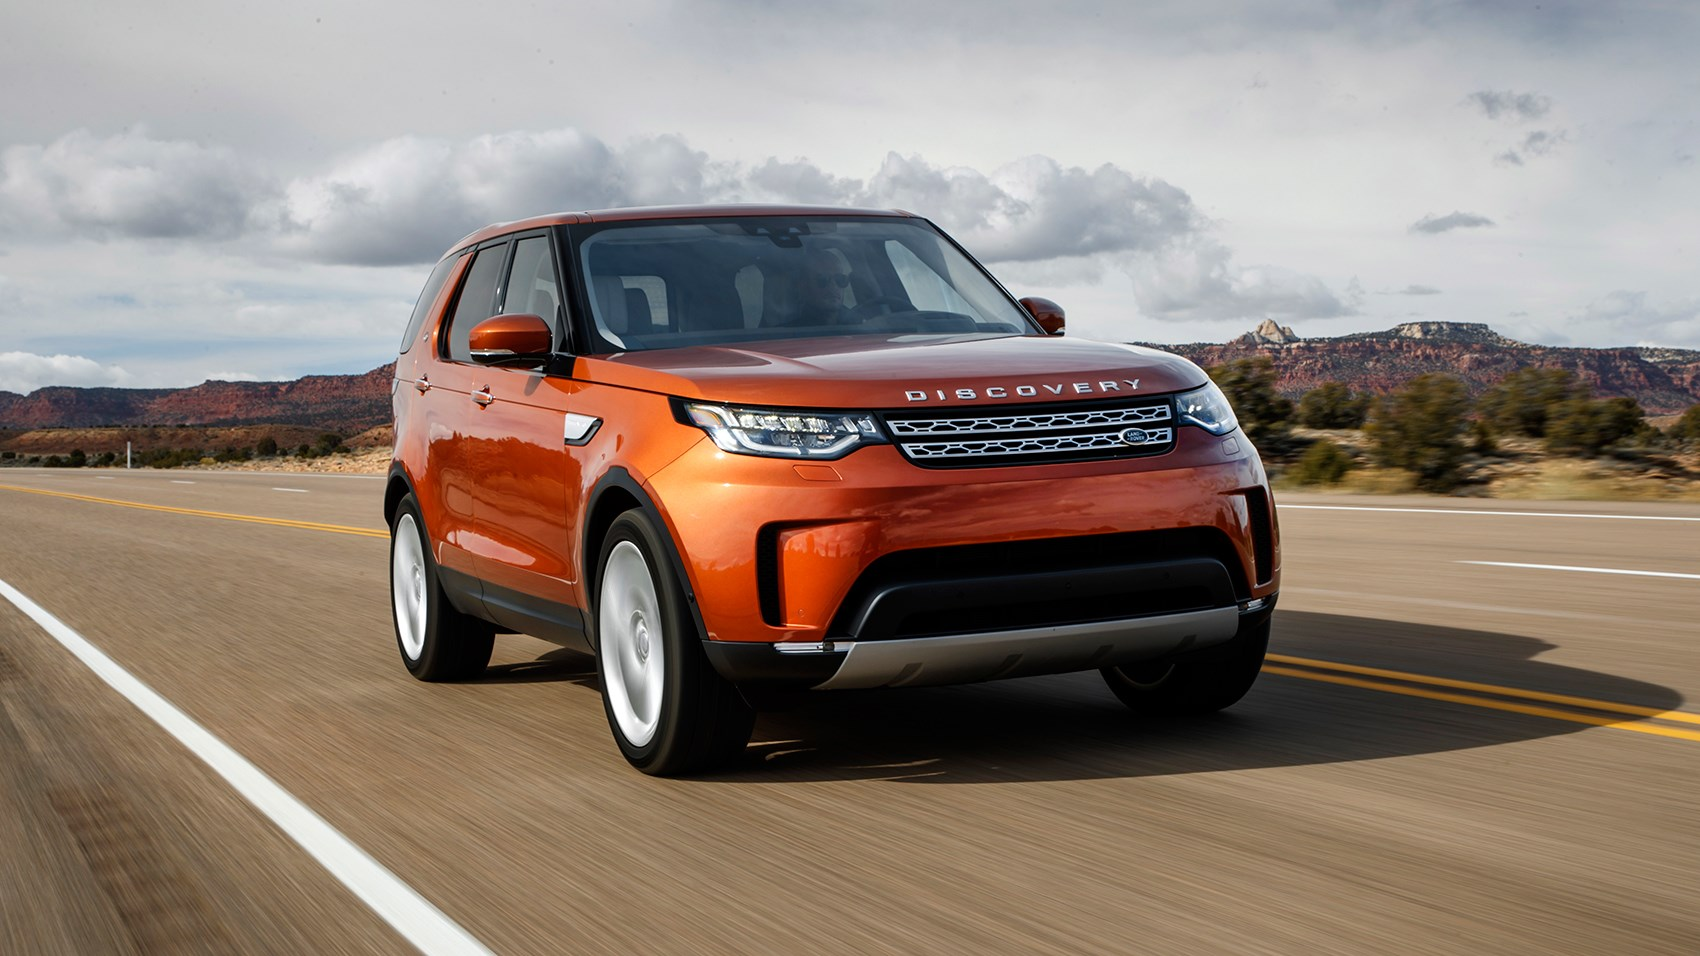 The CAR magazine Land Rover Discovery 5 review